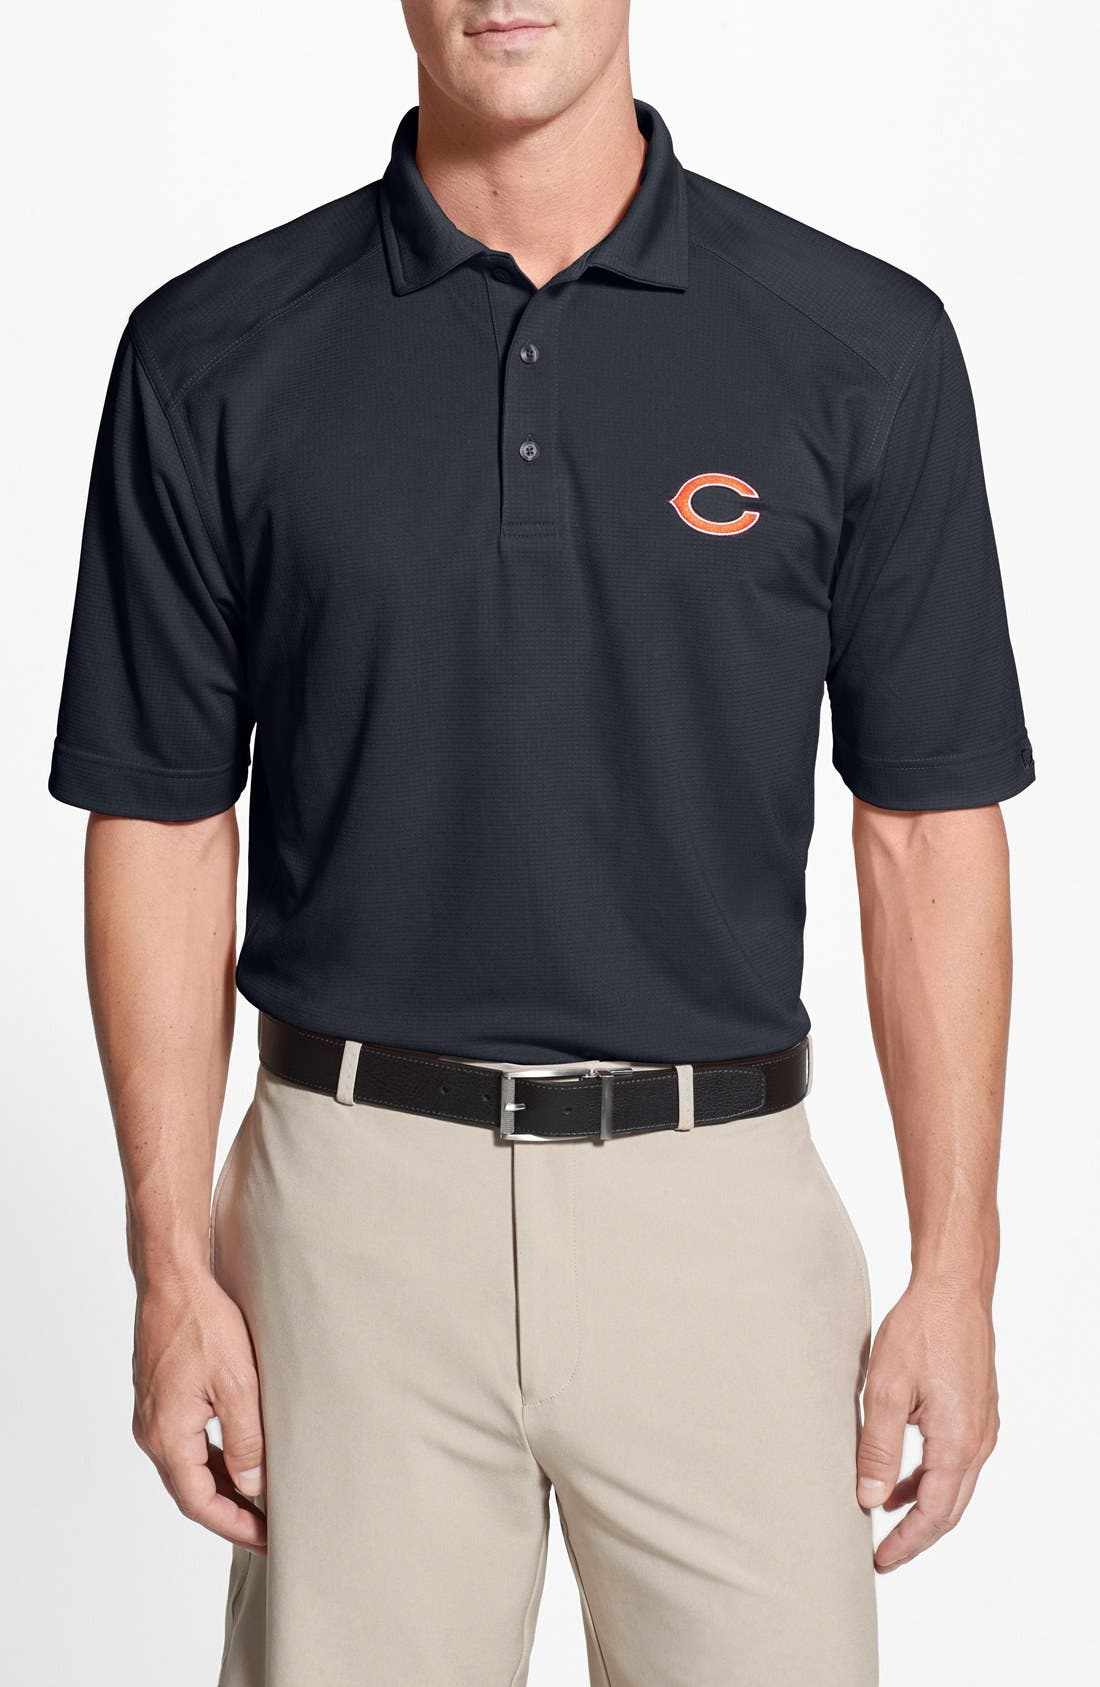 Chicago Bears - Genre DryTec Moisture Wicking Polo,                             Main thumbnail 1, color,                             Navy Blue